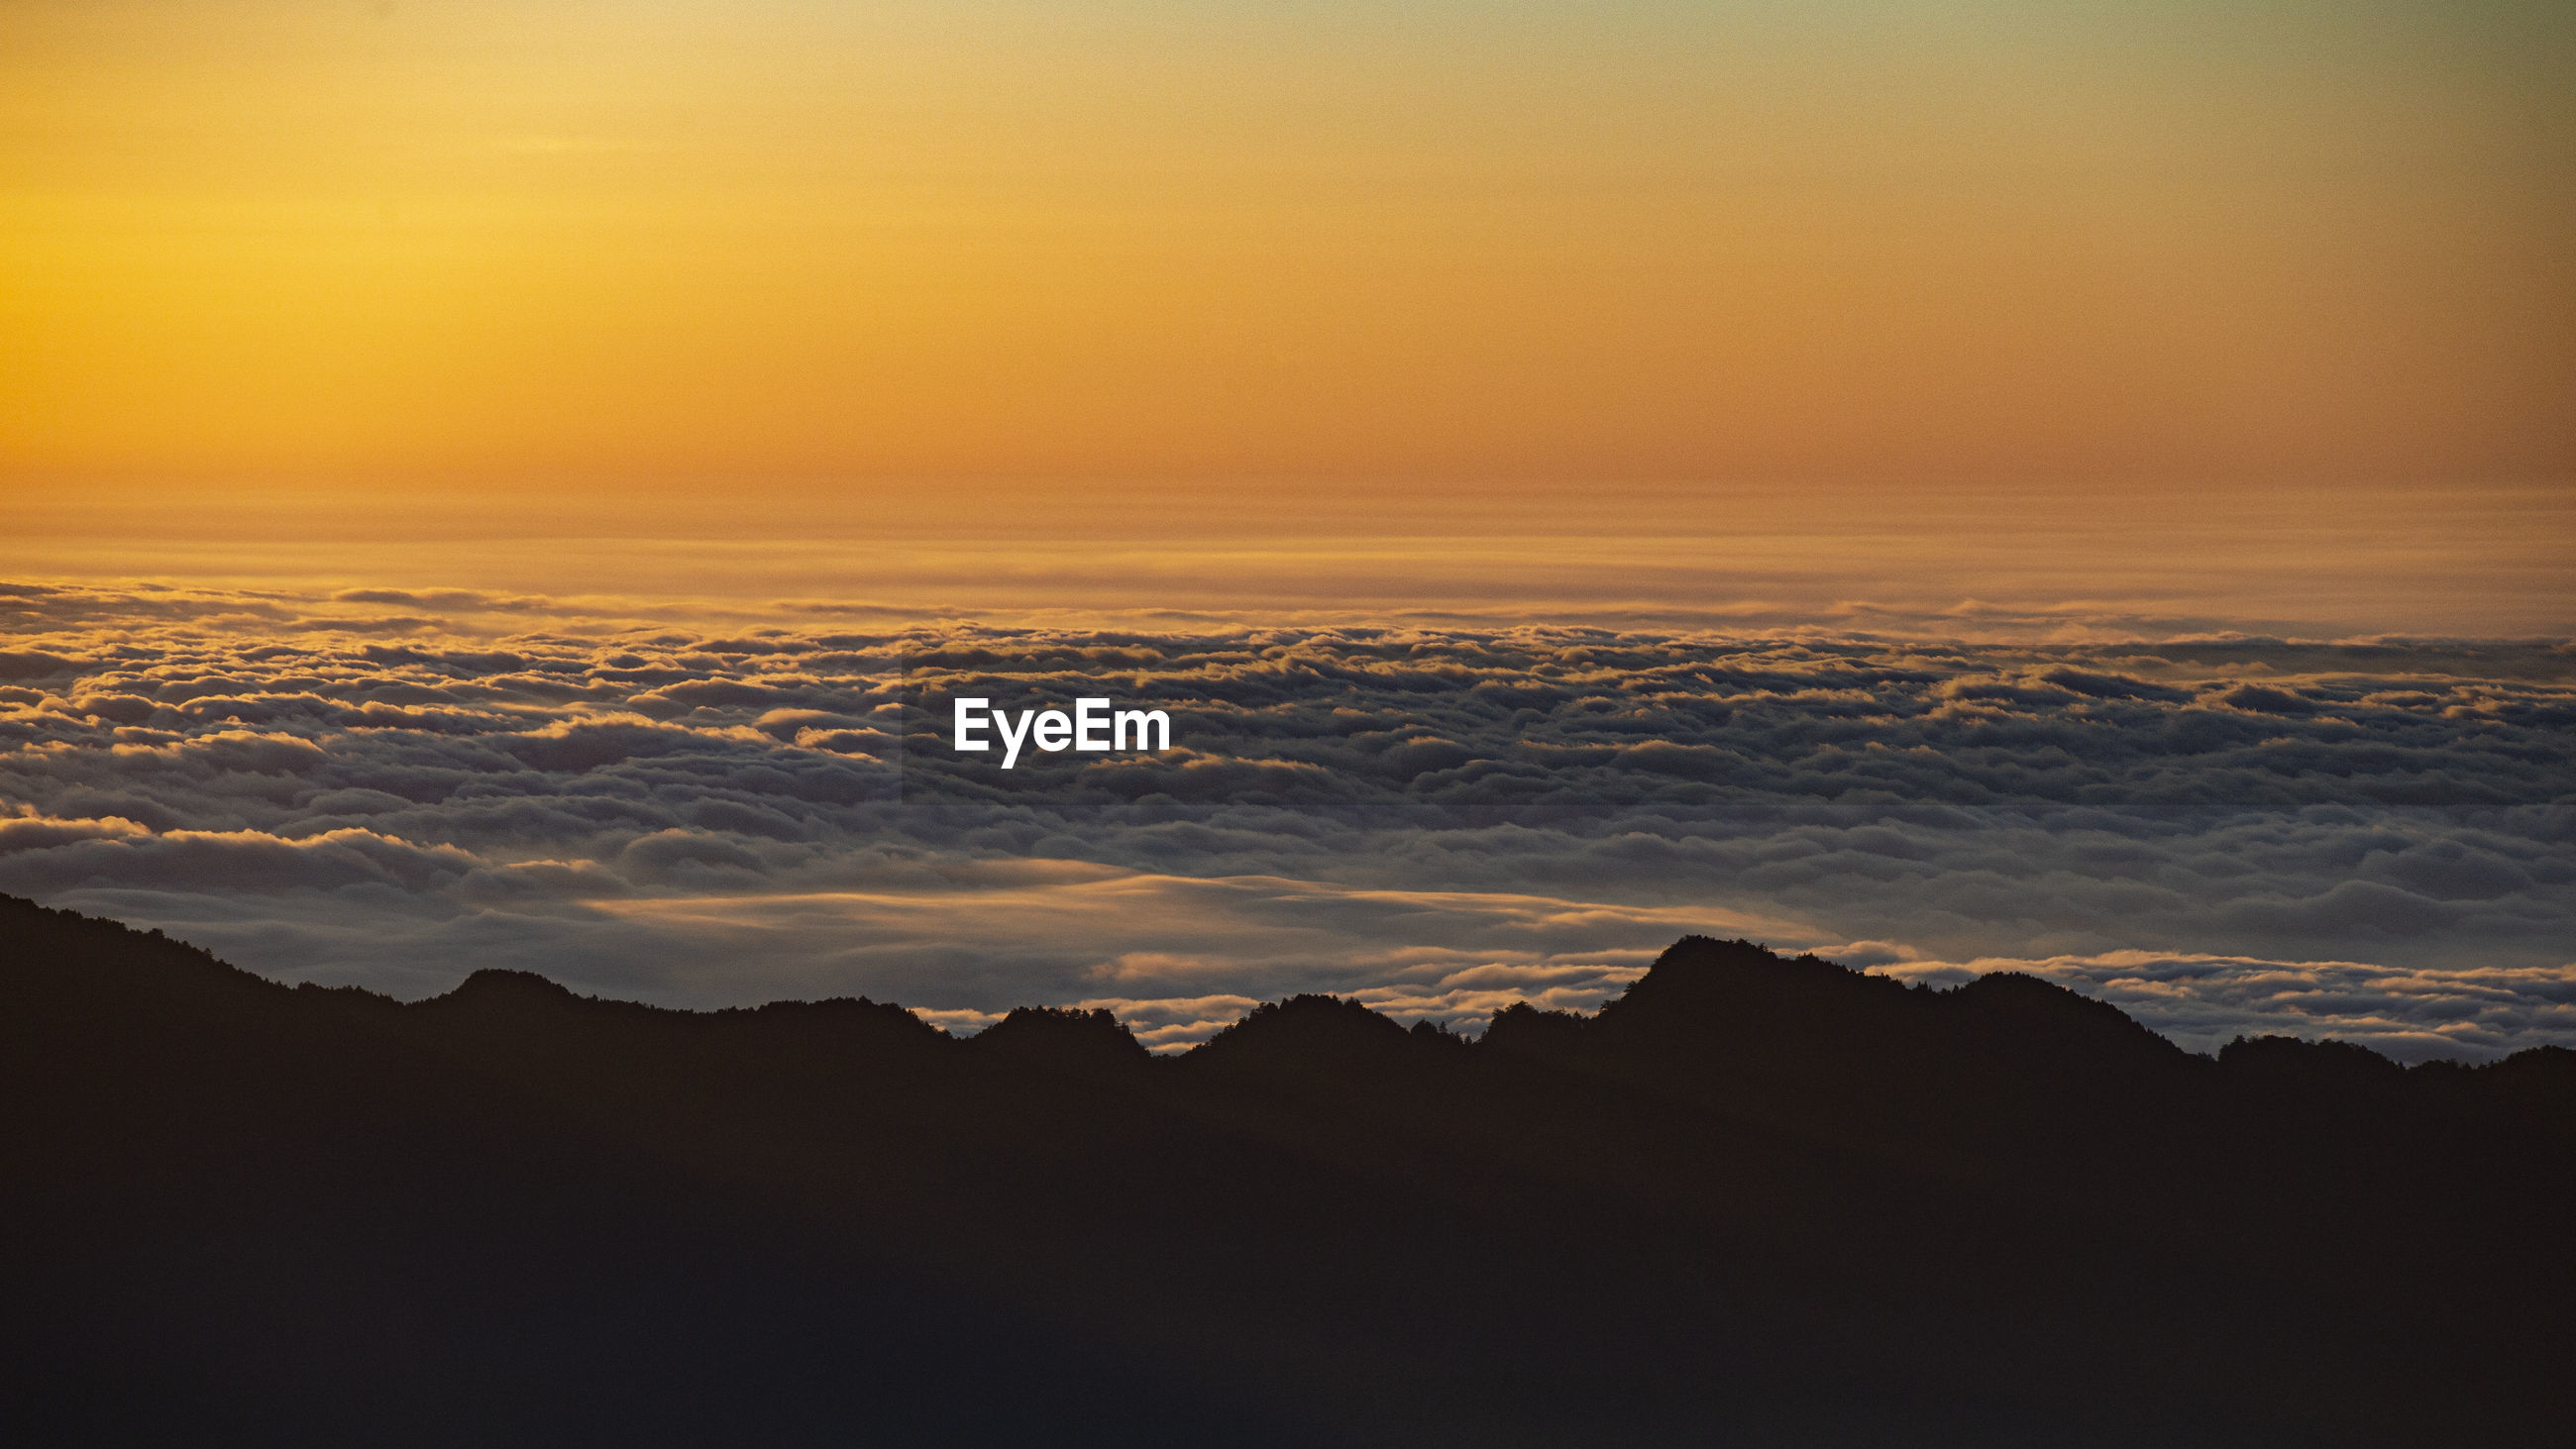 Scenic view of silhouette mountains against orange sky